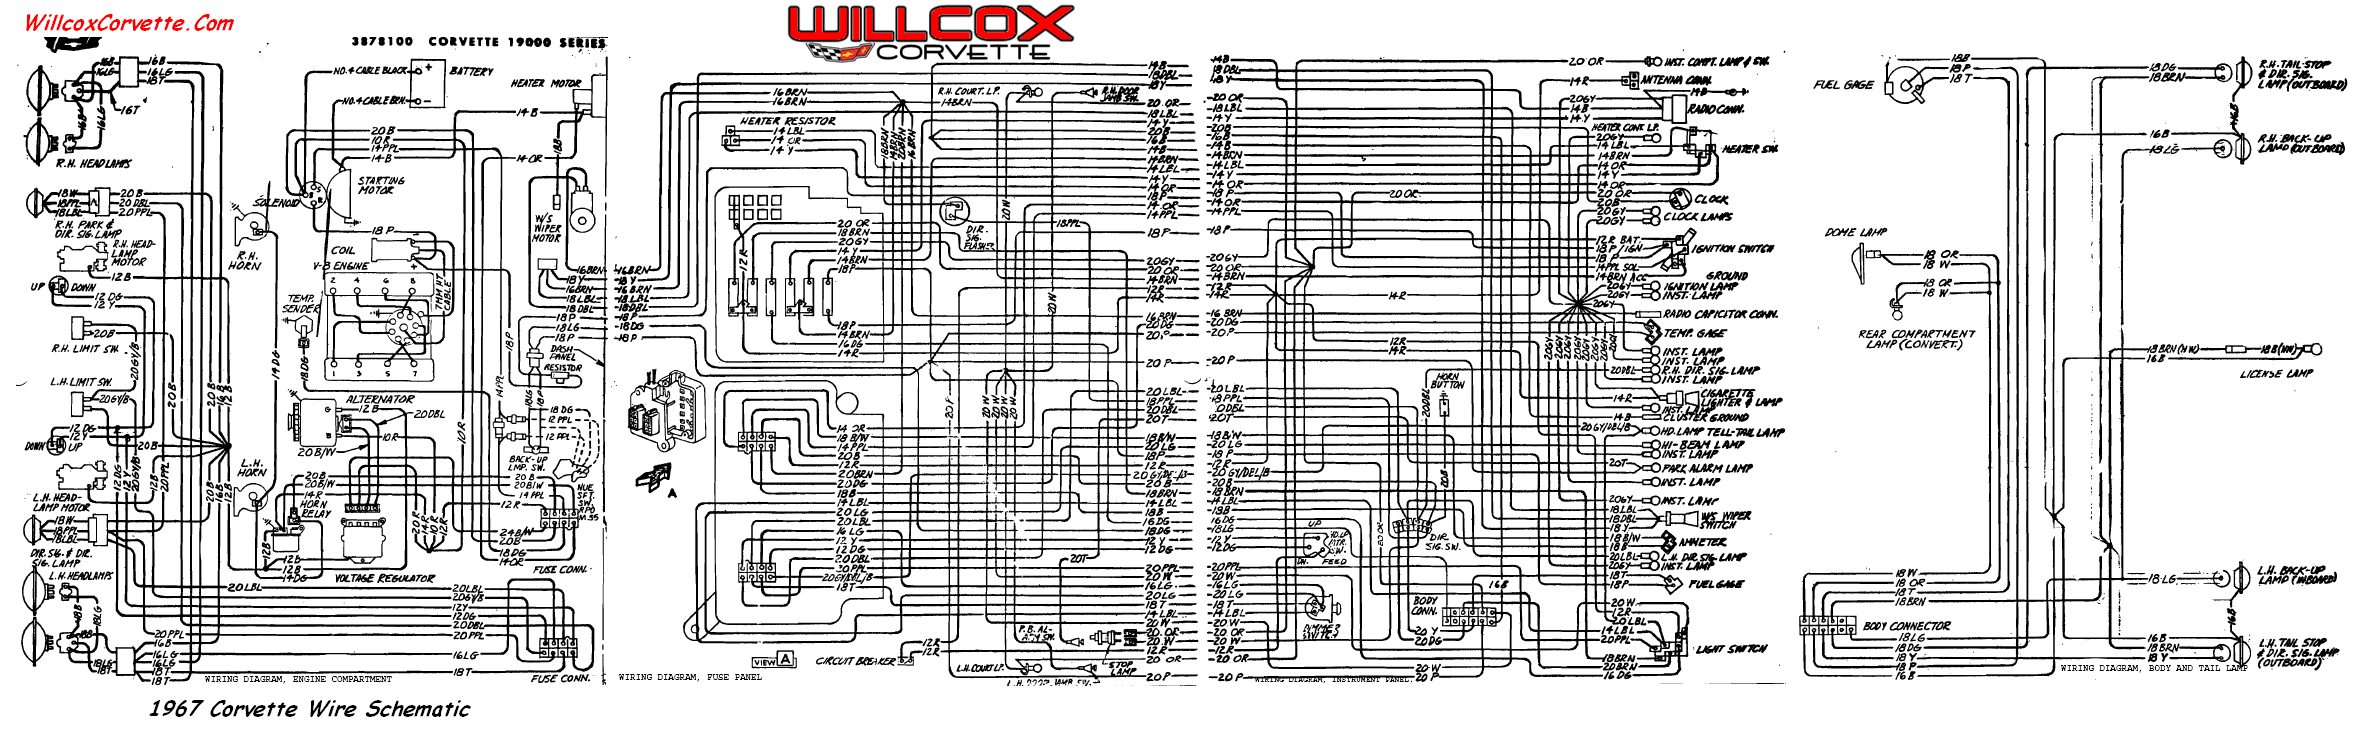 1966 corvette wiring diagram 1973 corvette wiring diagram \u2022 wiring Hei Distributor Cap Wiring Diagram 1991 corvette wiring diagram schematic